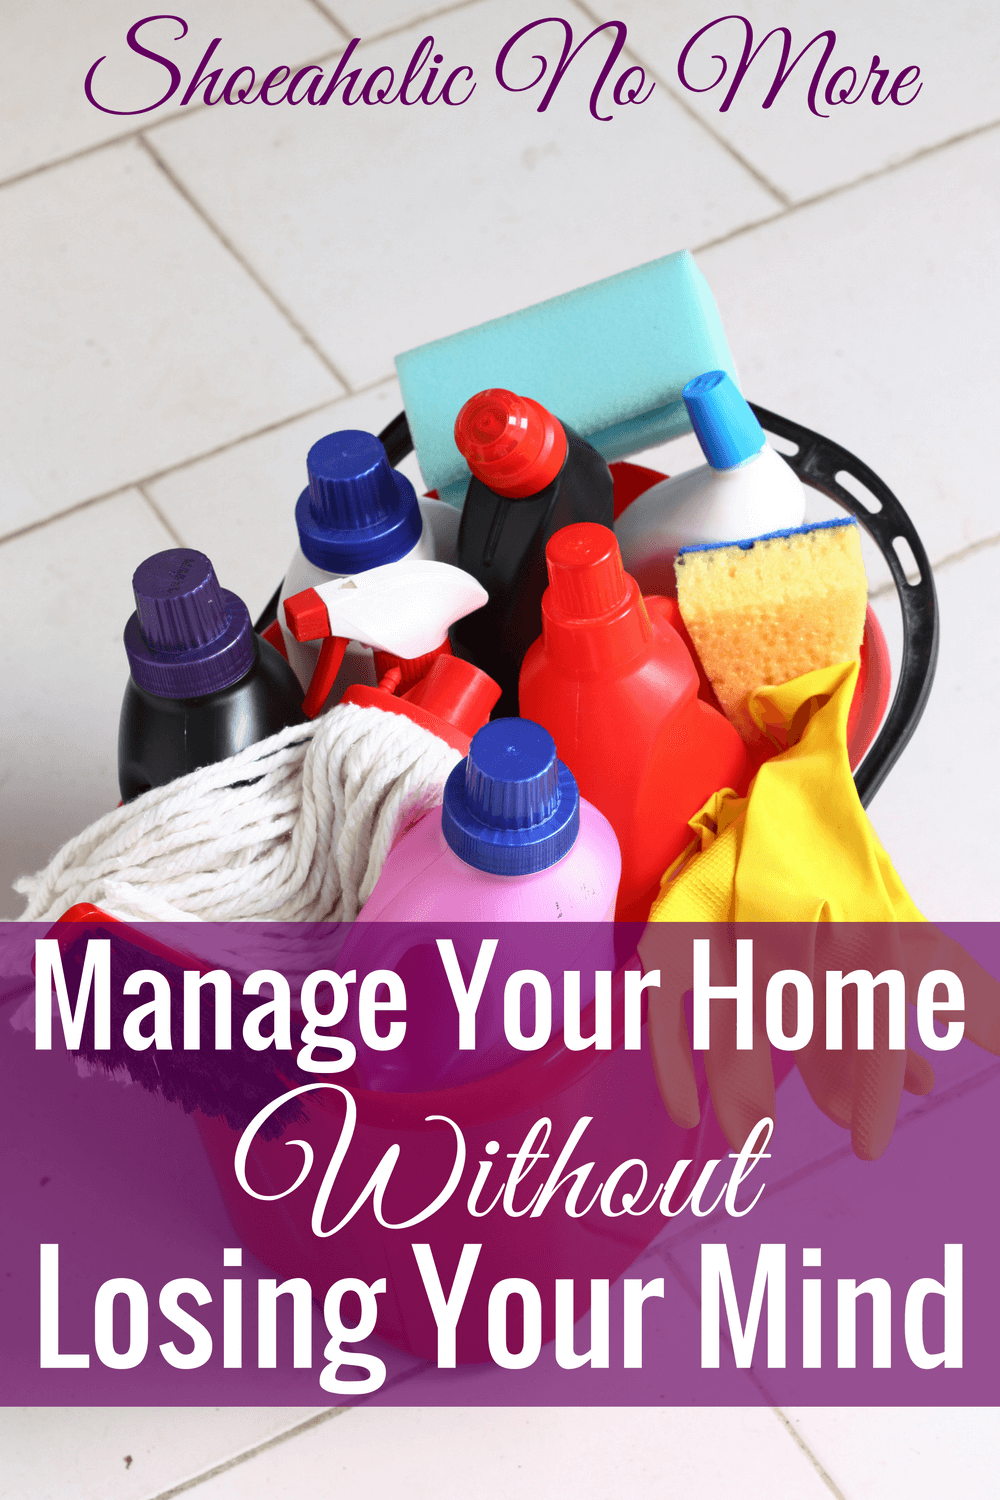 Is your home cluttered and driving you crazy? You might need to read Dana White's helpful new book, How to Manage Your Home Without Losing Your Mind.